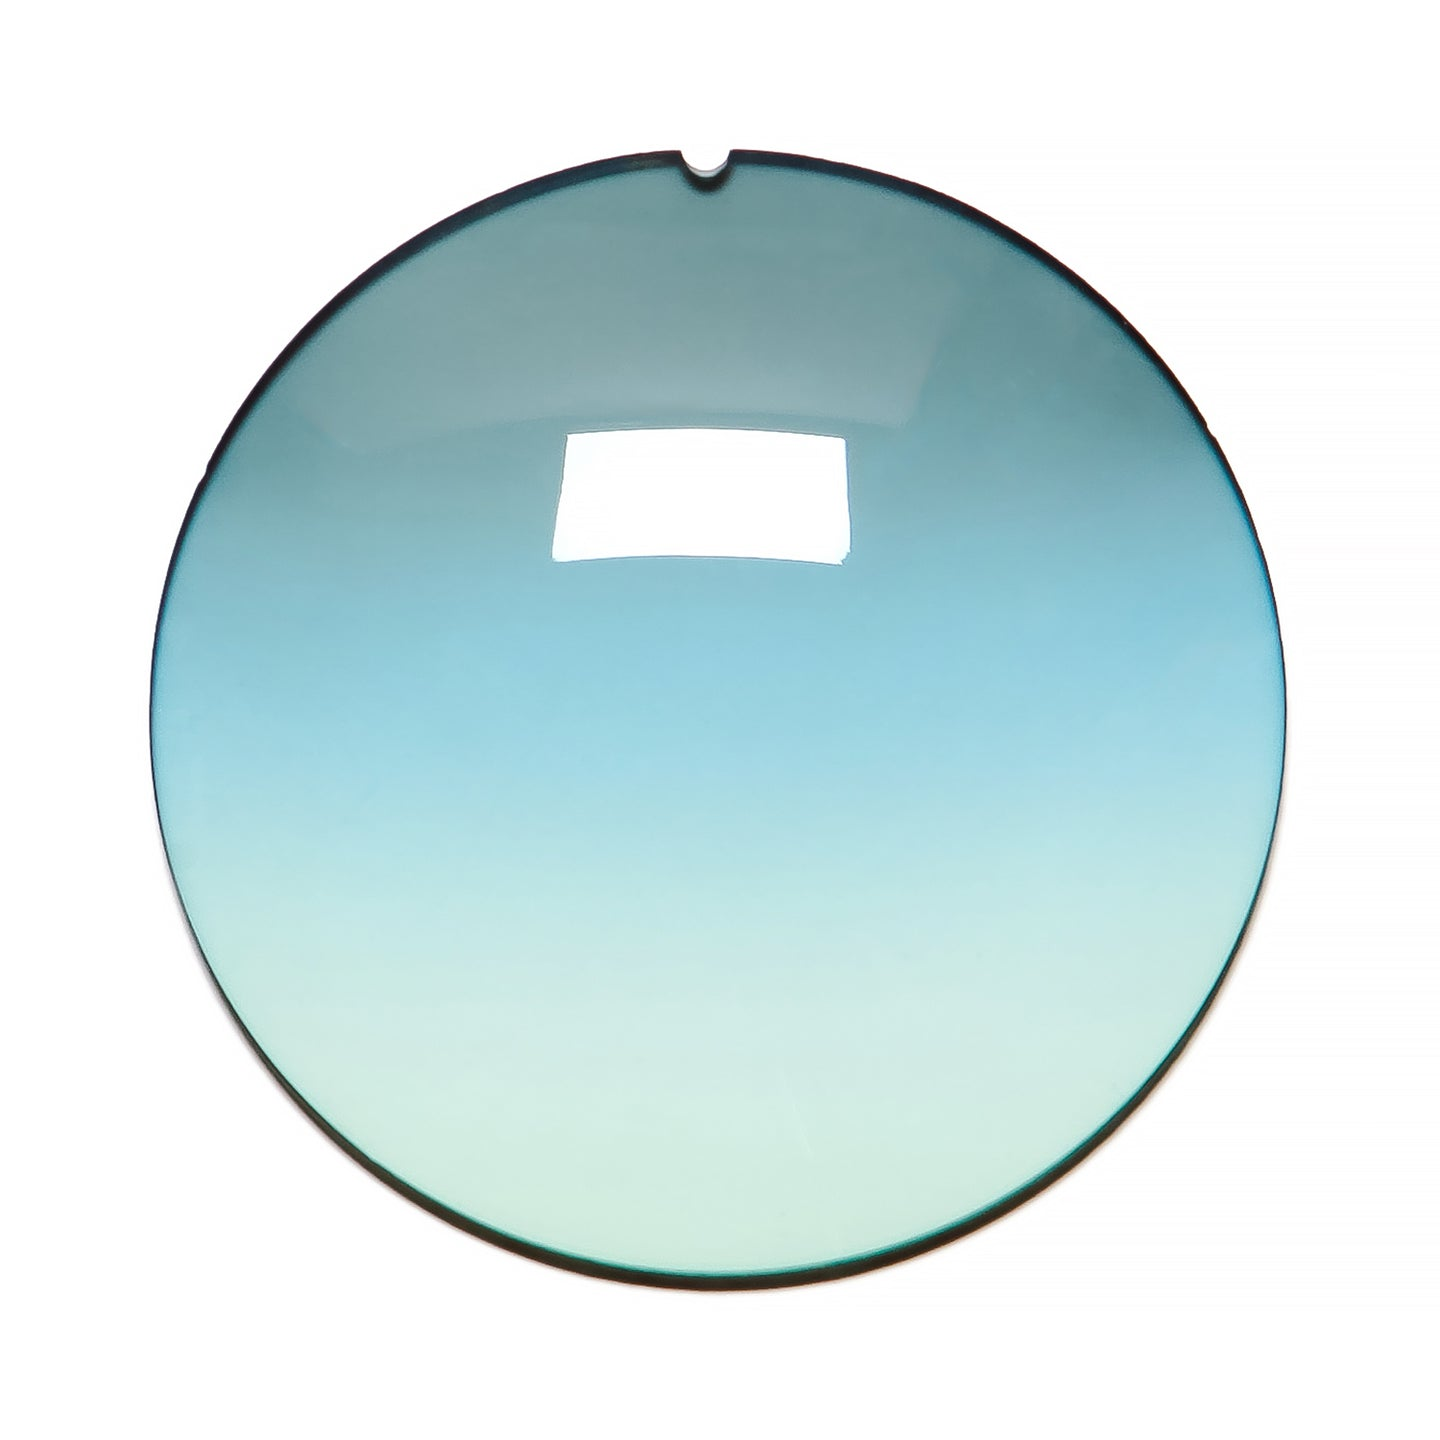 034 - Blue / Mint Gradient Regular Curve Lens